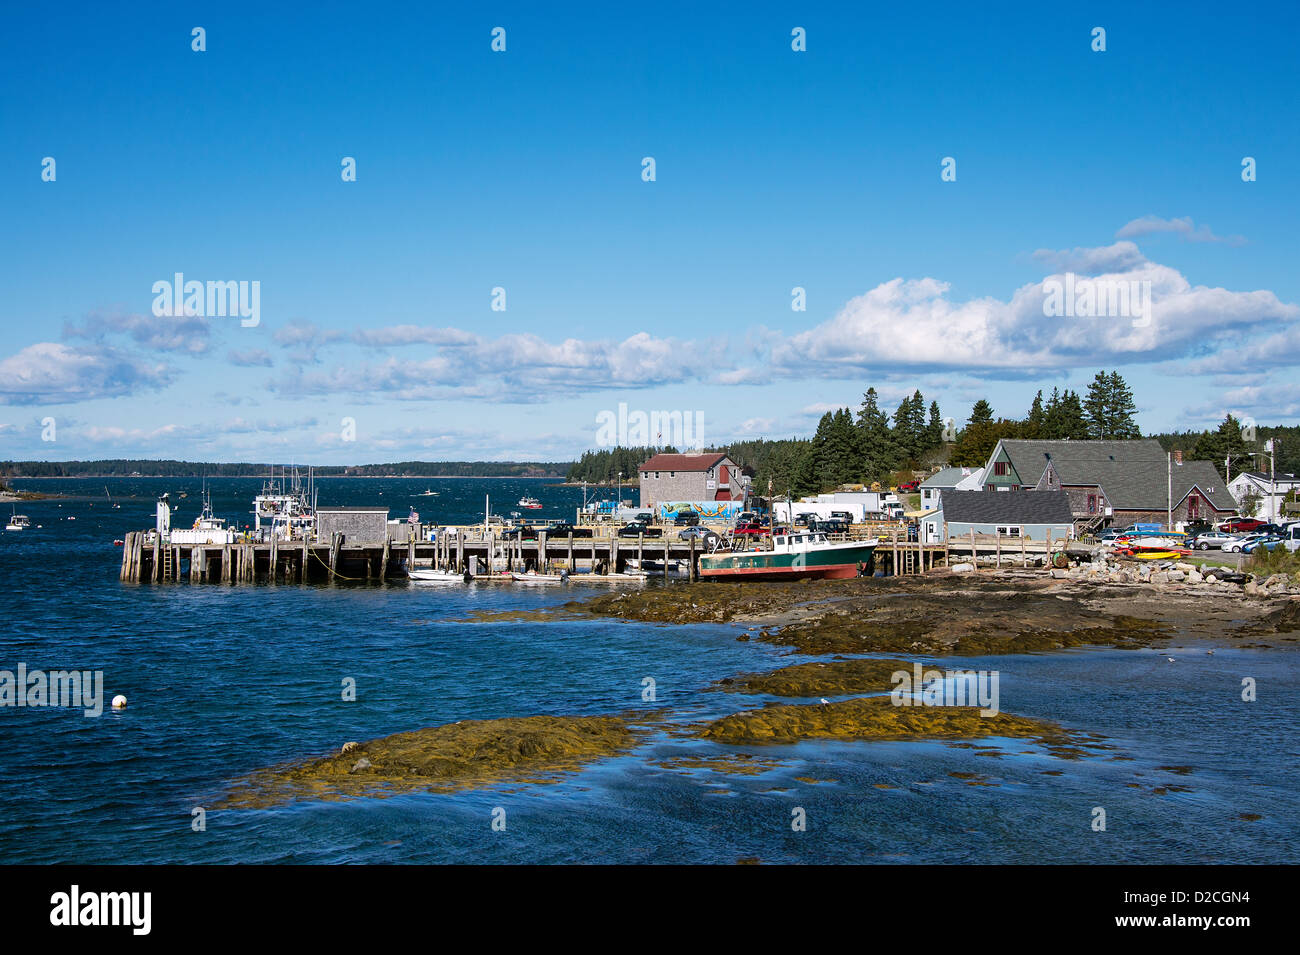 Quaint fishing village, Port Clyde, Maine, USA - Stock Image